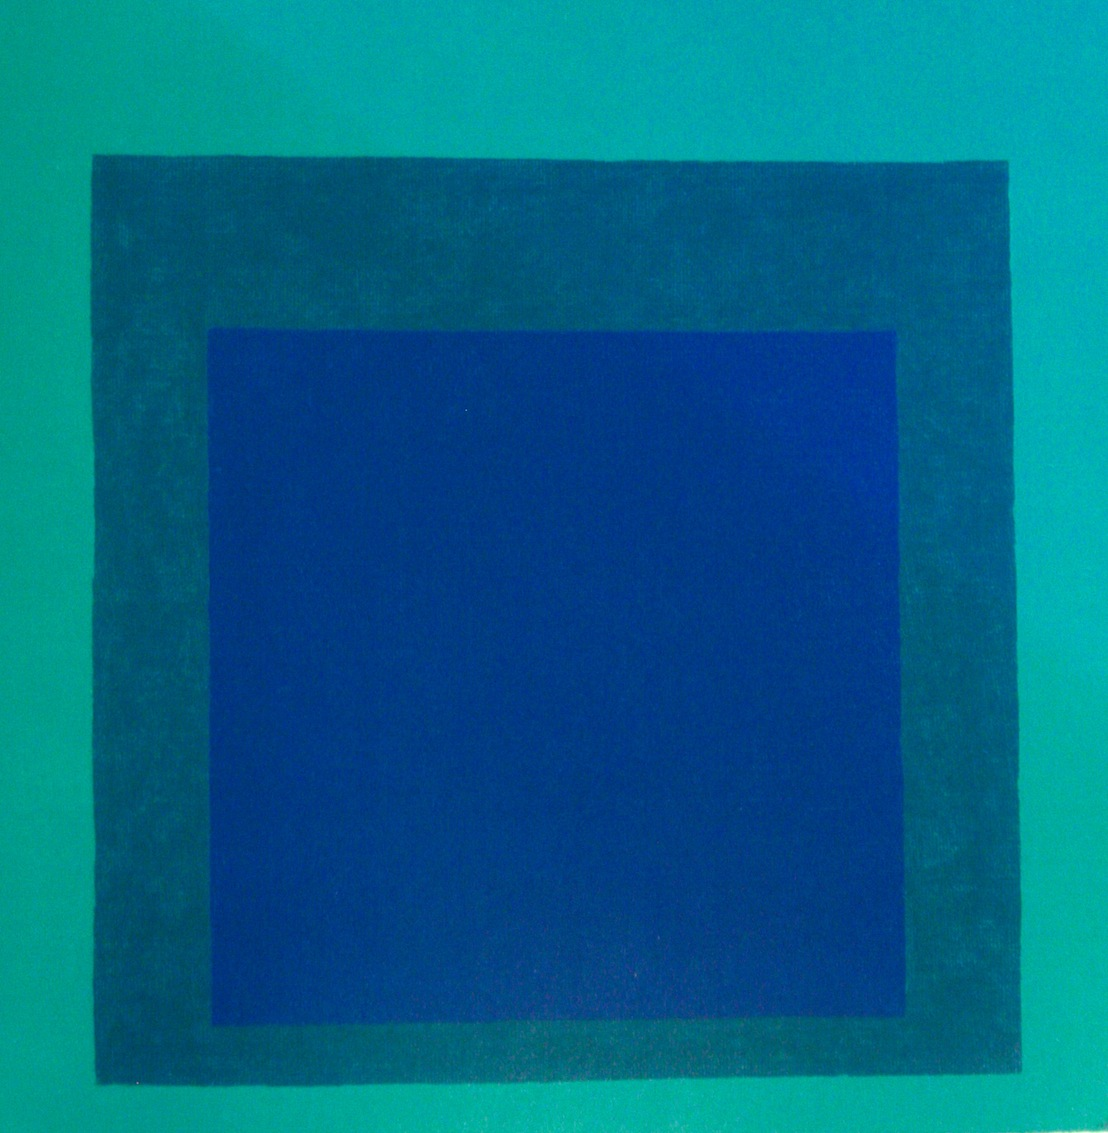 Josef Albers, Homage to the Square, 1976, oil on canvas